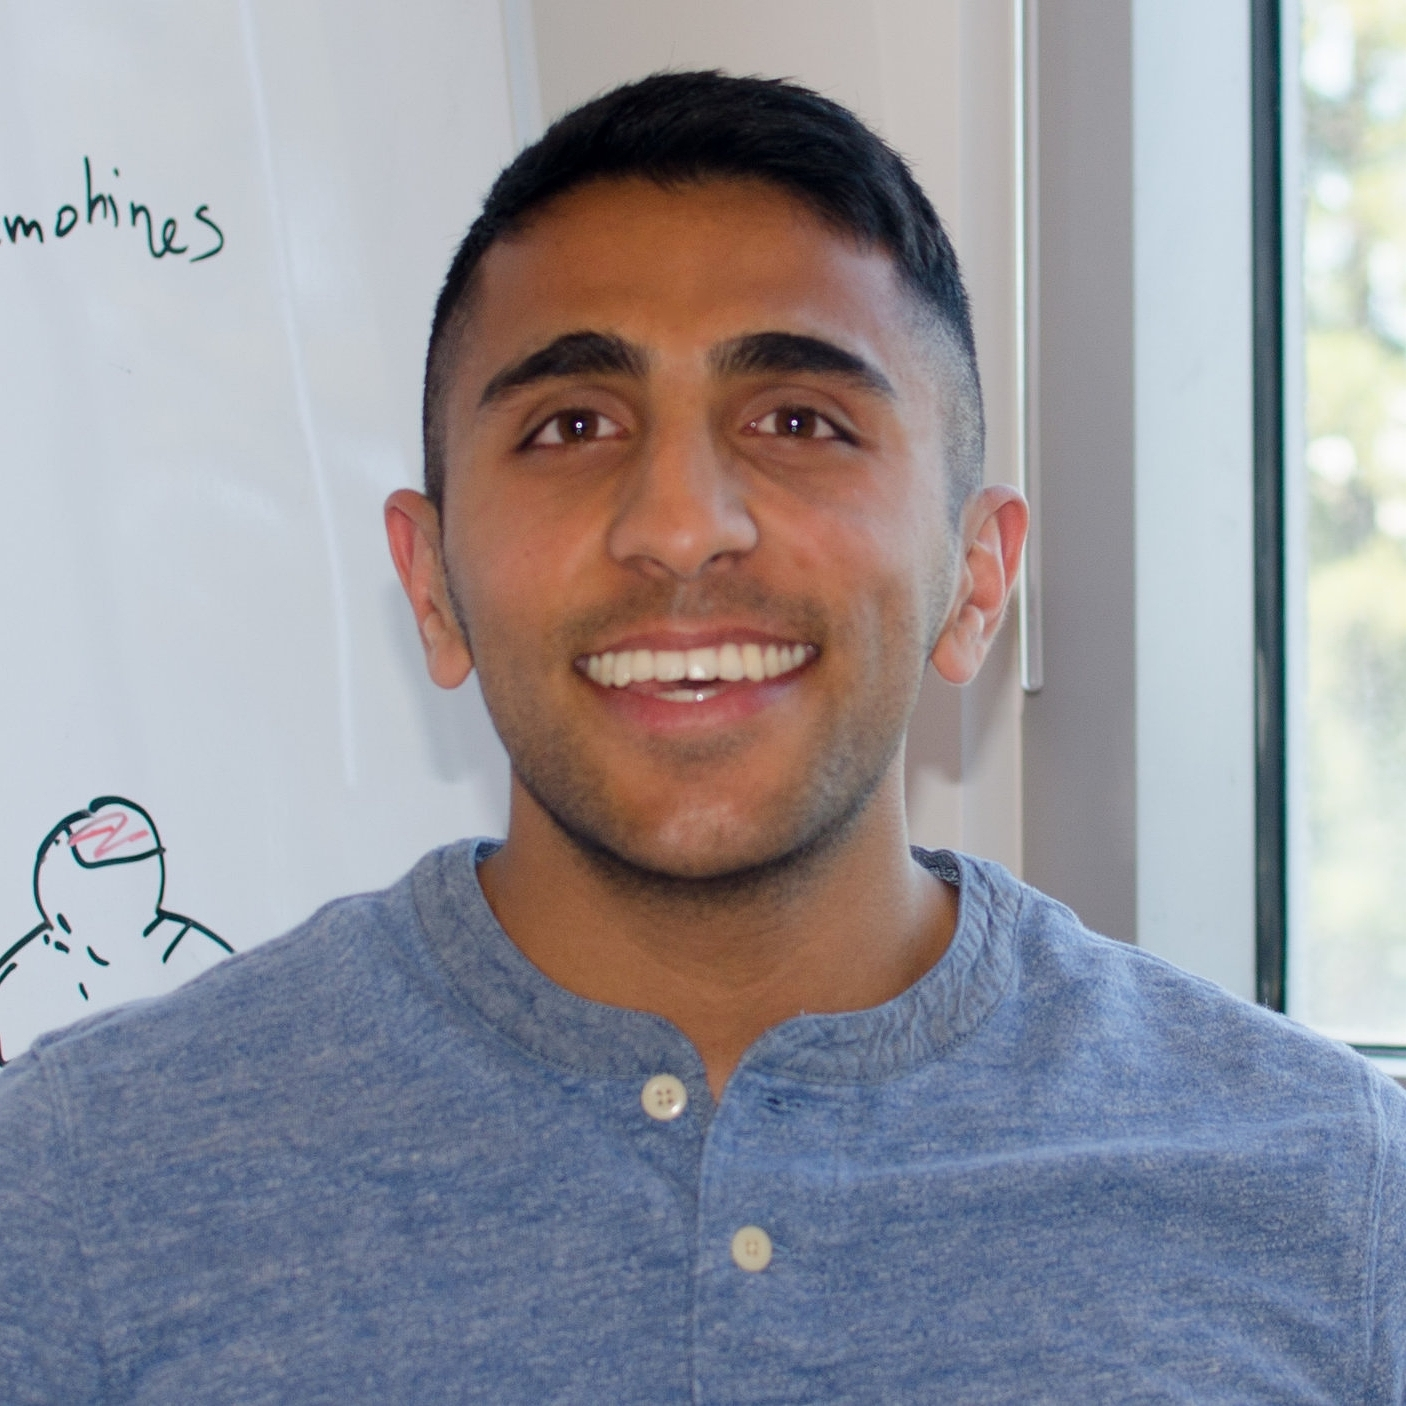 Jk Gopakumar - Research AssociateJk, a Bay Area native, completed his undergrad at Pomona College where he obtained a B.S. in Neuroscience. He was also a member of the soccer and track teams at Pomona College. He is currently working in the Jaiswal lab while applying to MD/PhD programs.